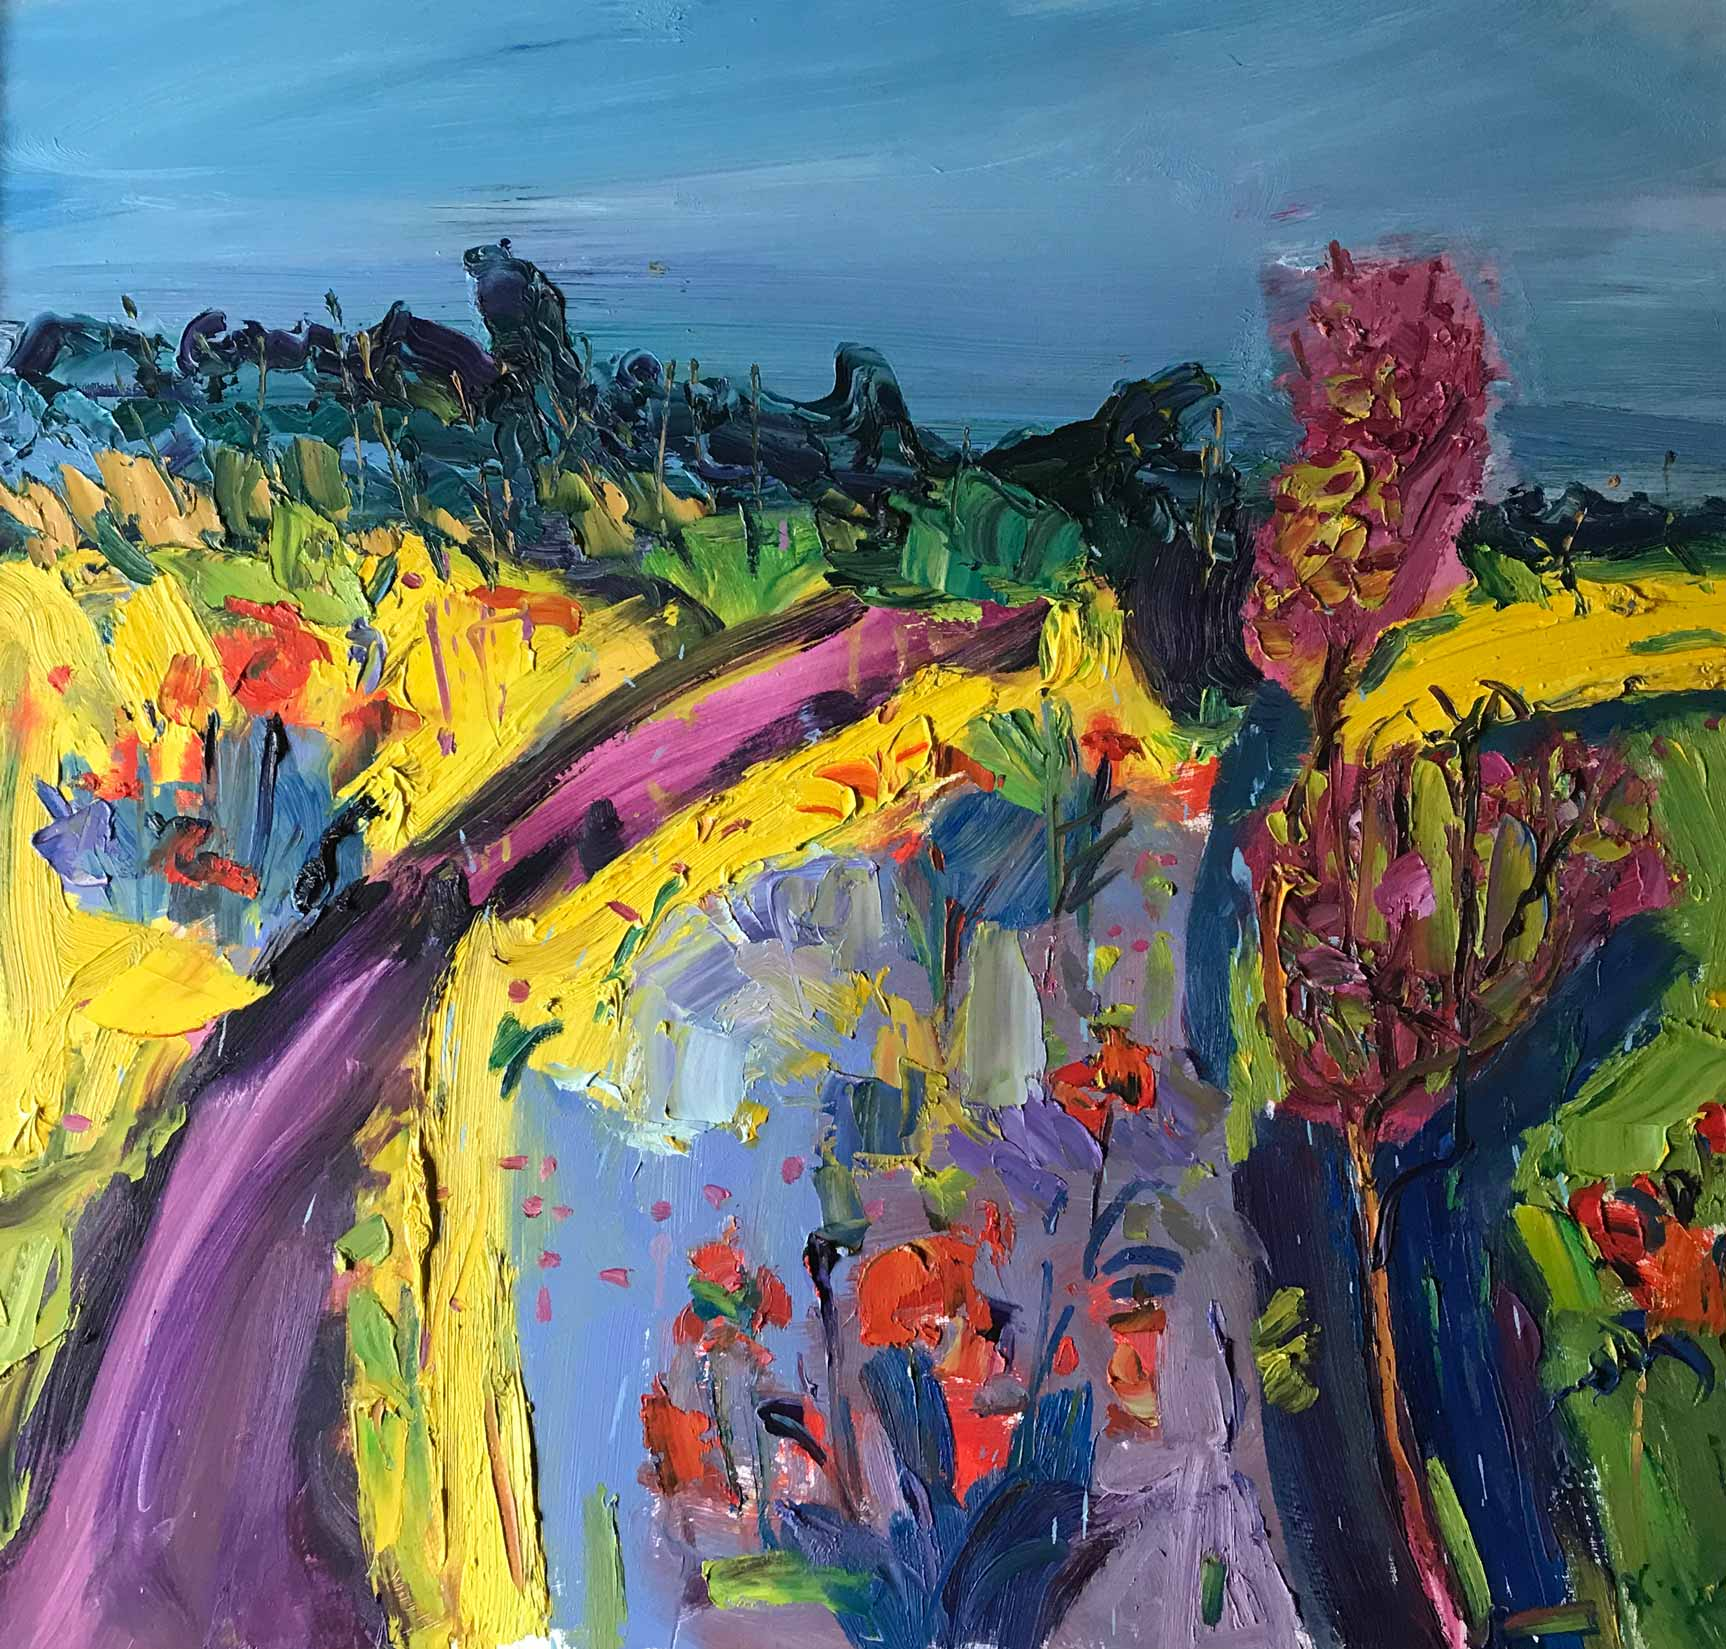 path-to-studio-past-ivy-covered-wall—main